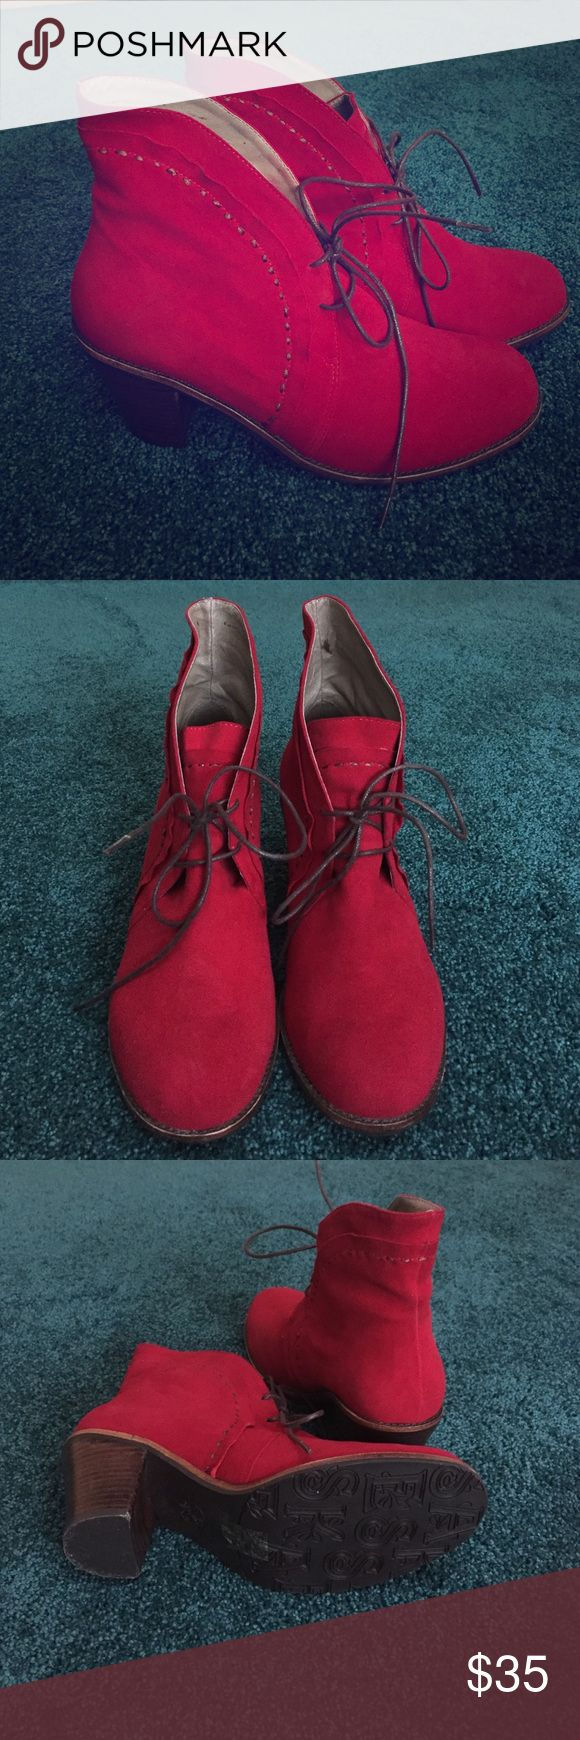 """Red suede booties Funky red suede booties with 3"""" brown stacked heel. Cute & comfortable. Worn only once or twice. Esska Shoes Ankle Boots & Booties"""